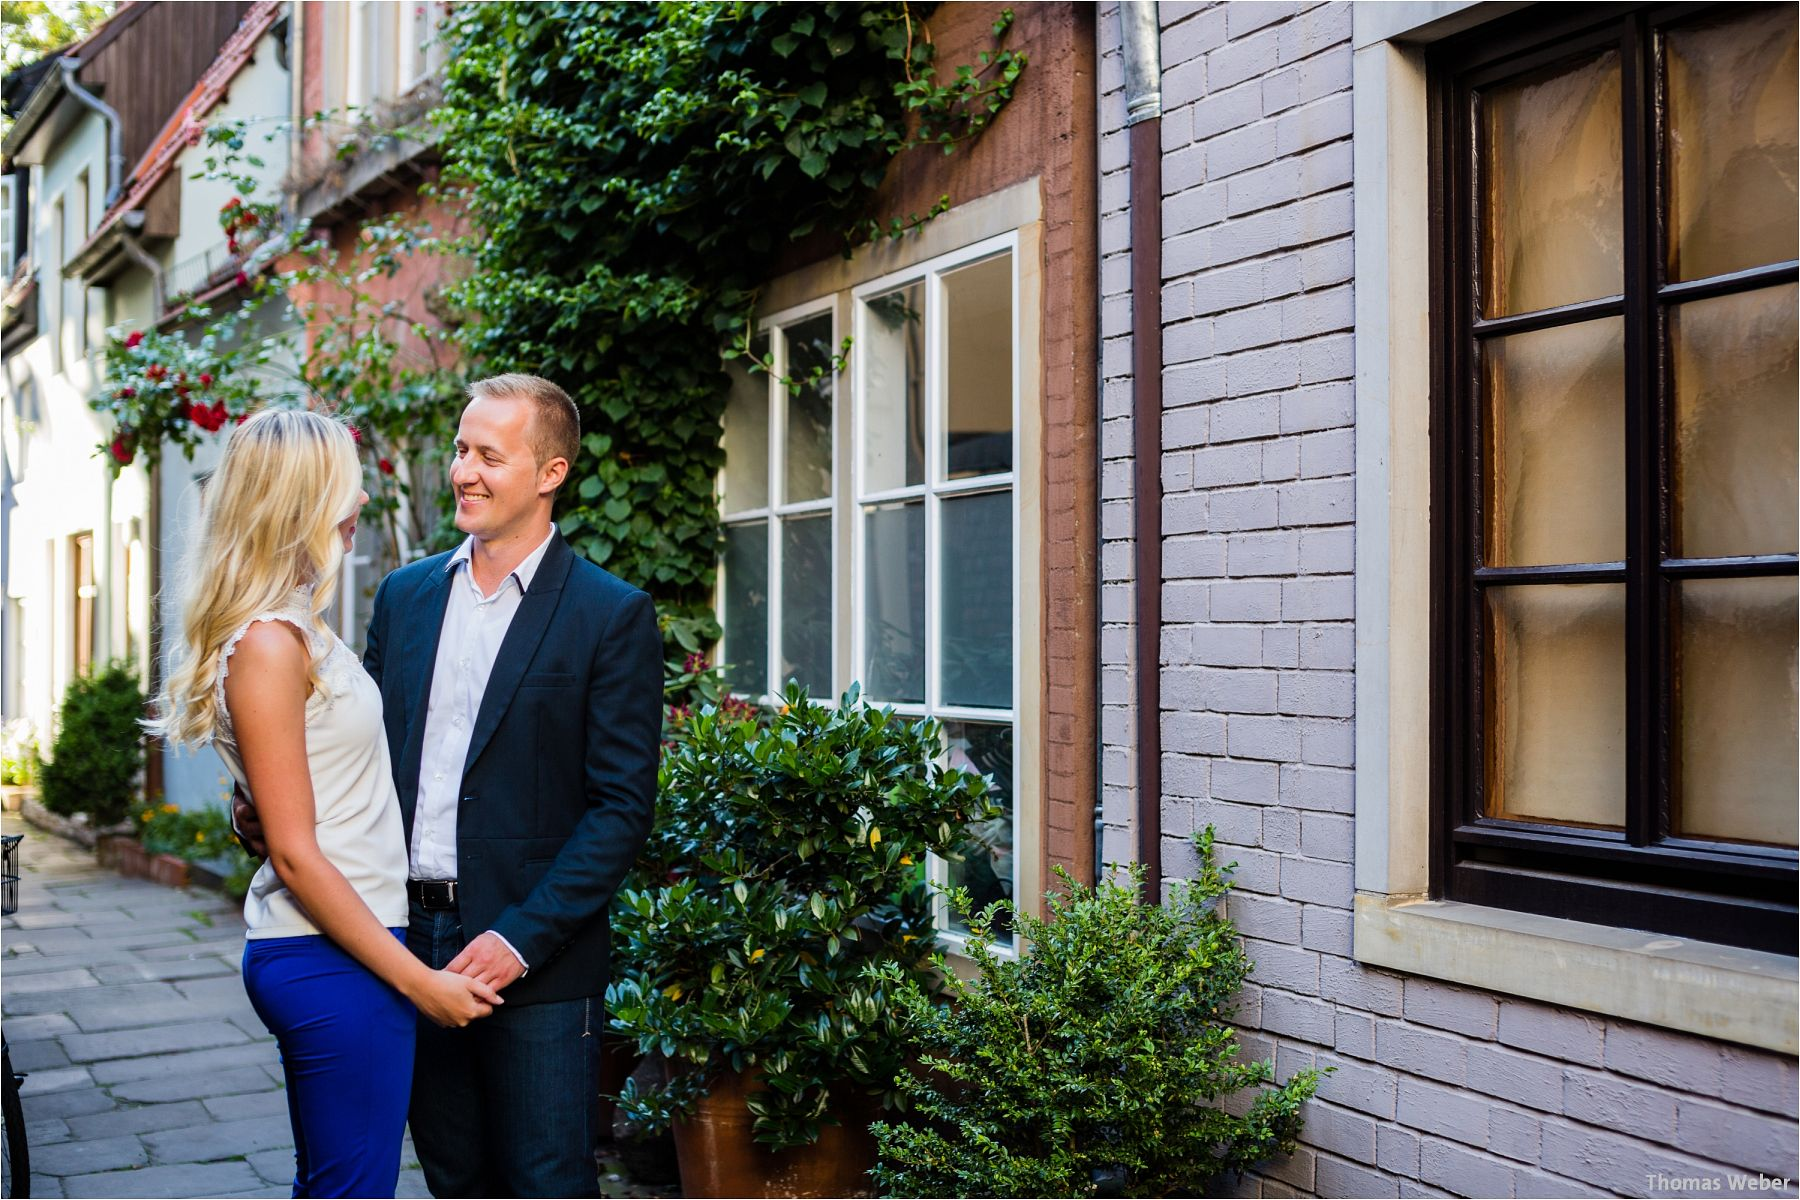 Hochzeitsfotograf Thomas Weber aus Oldenburg: Engagement-Shooting in Bremen